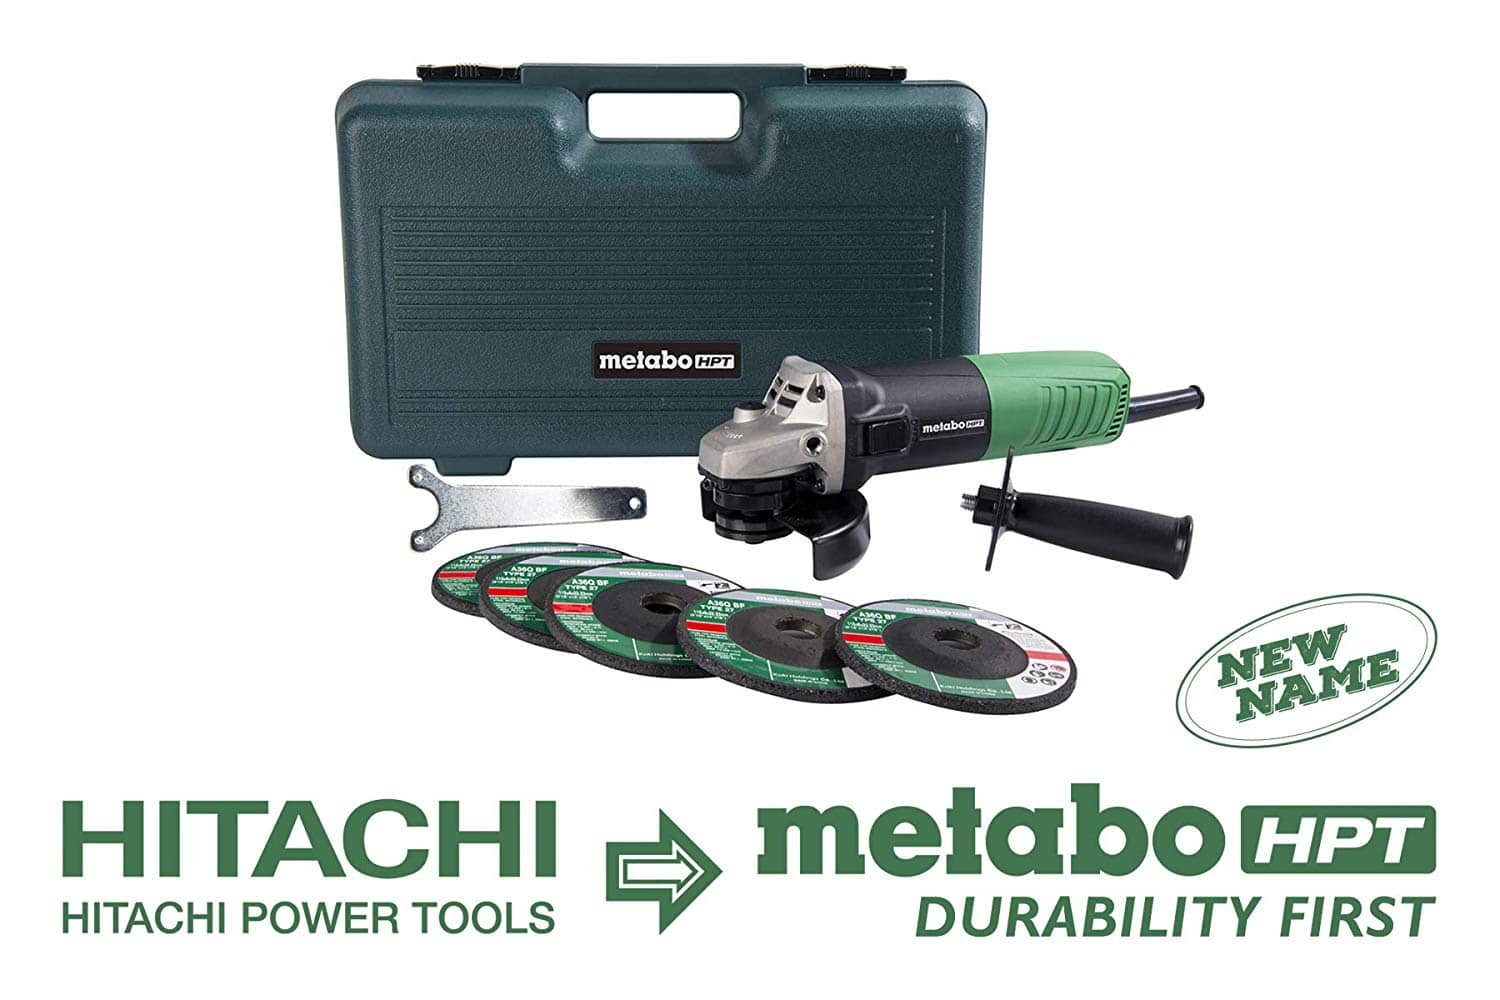 """Metabo HPT Angle Grinder, 4-1/2"""", Includes 5 Grinding Wheels & Hard Case, 6.2-Amp Motor, Compact & Lightweight, 5 Year Warranty, G12SR4 $29.00 @amazon or lowes"""